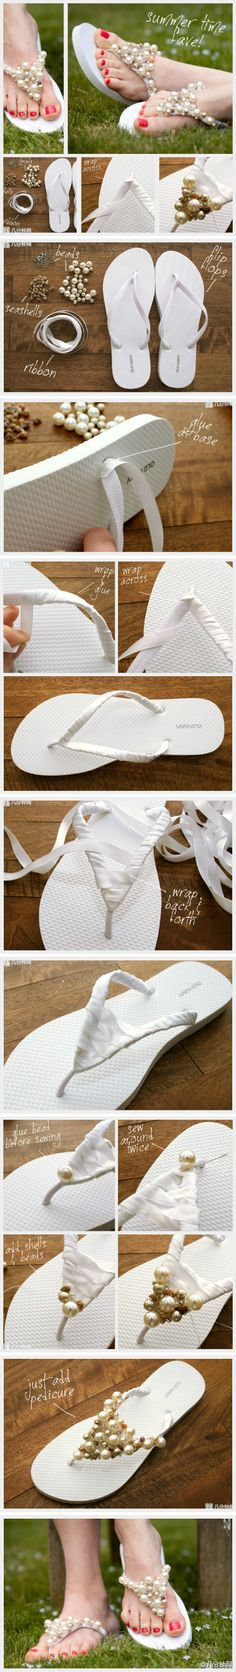 Awesome idea!.. AND... SOOO EASY !!  click on photo until LARGE pictures and Tutorial shows up.